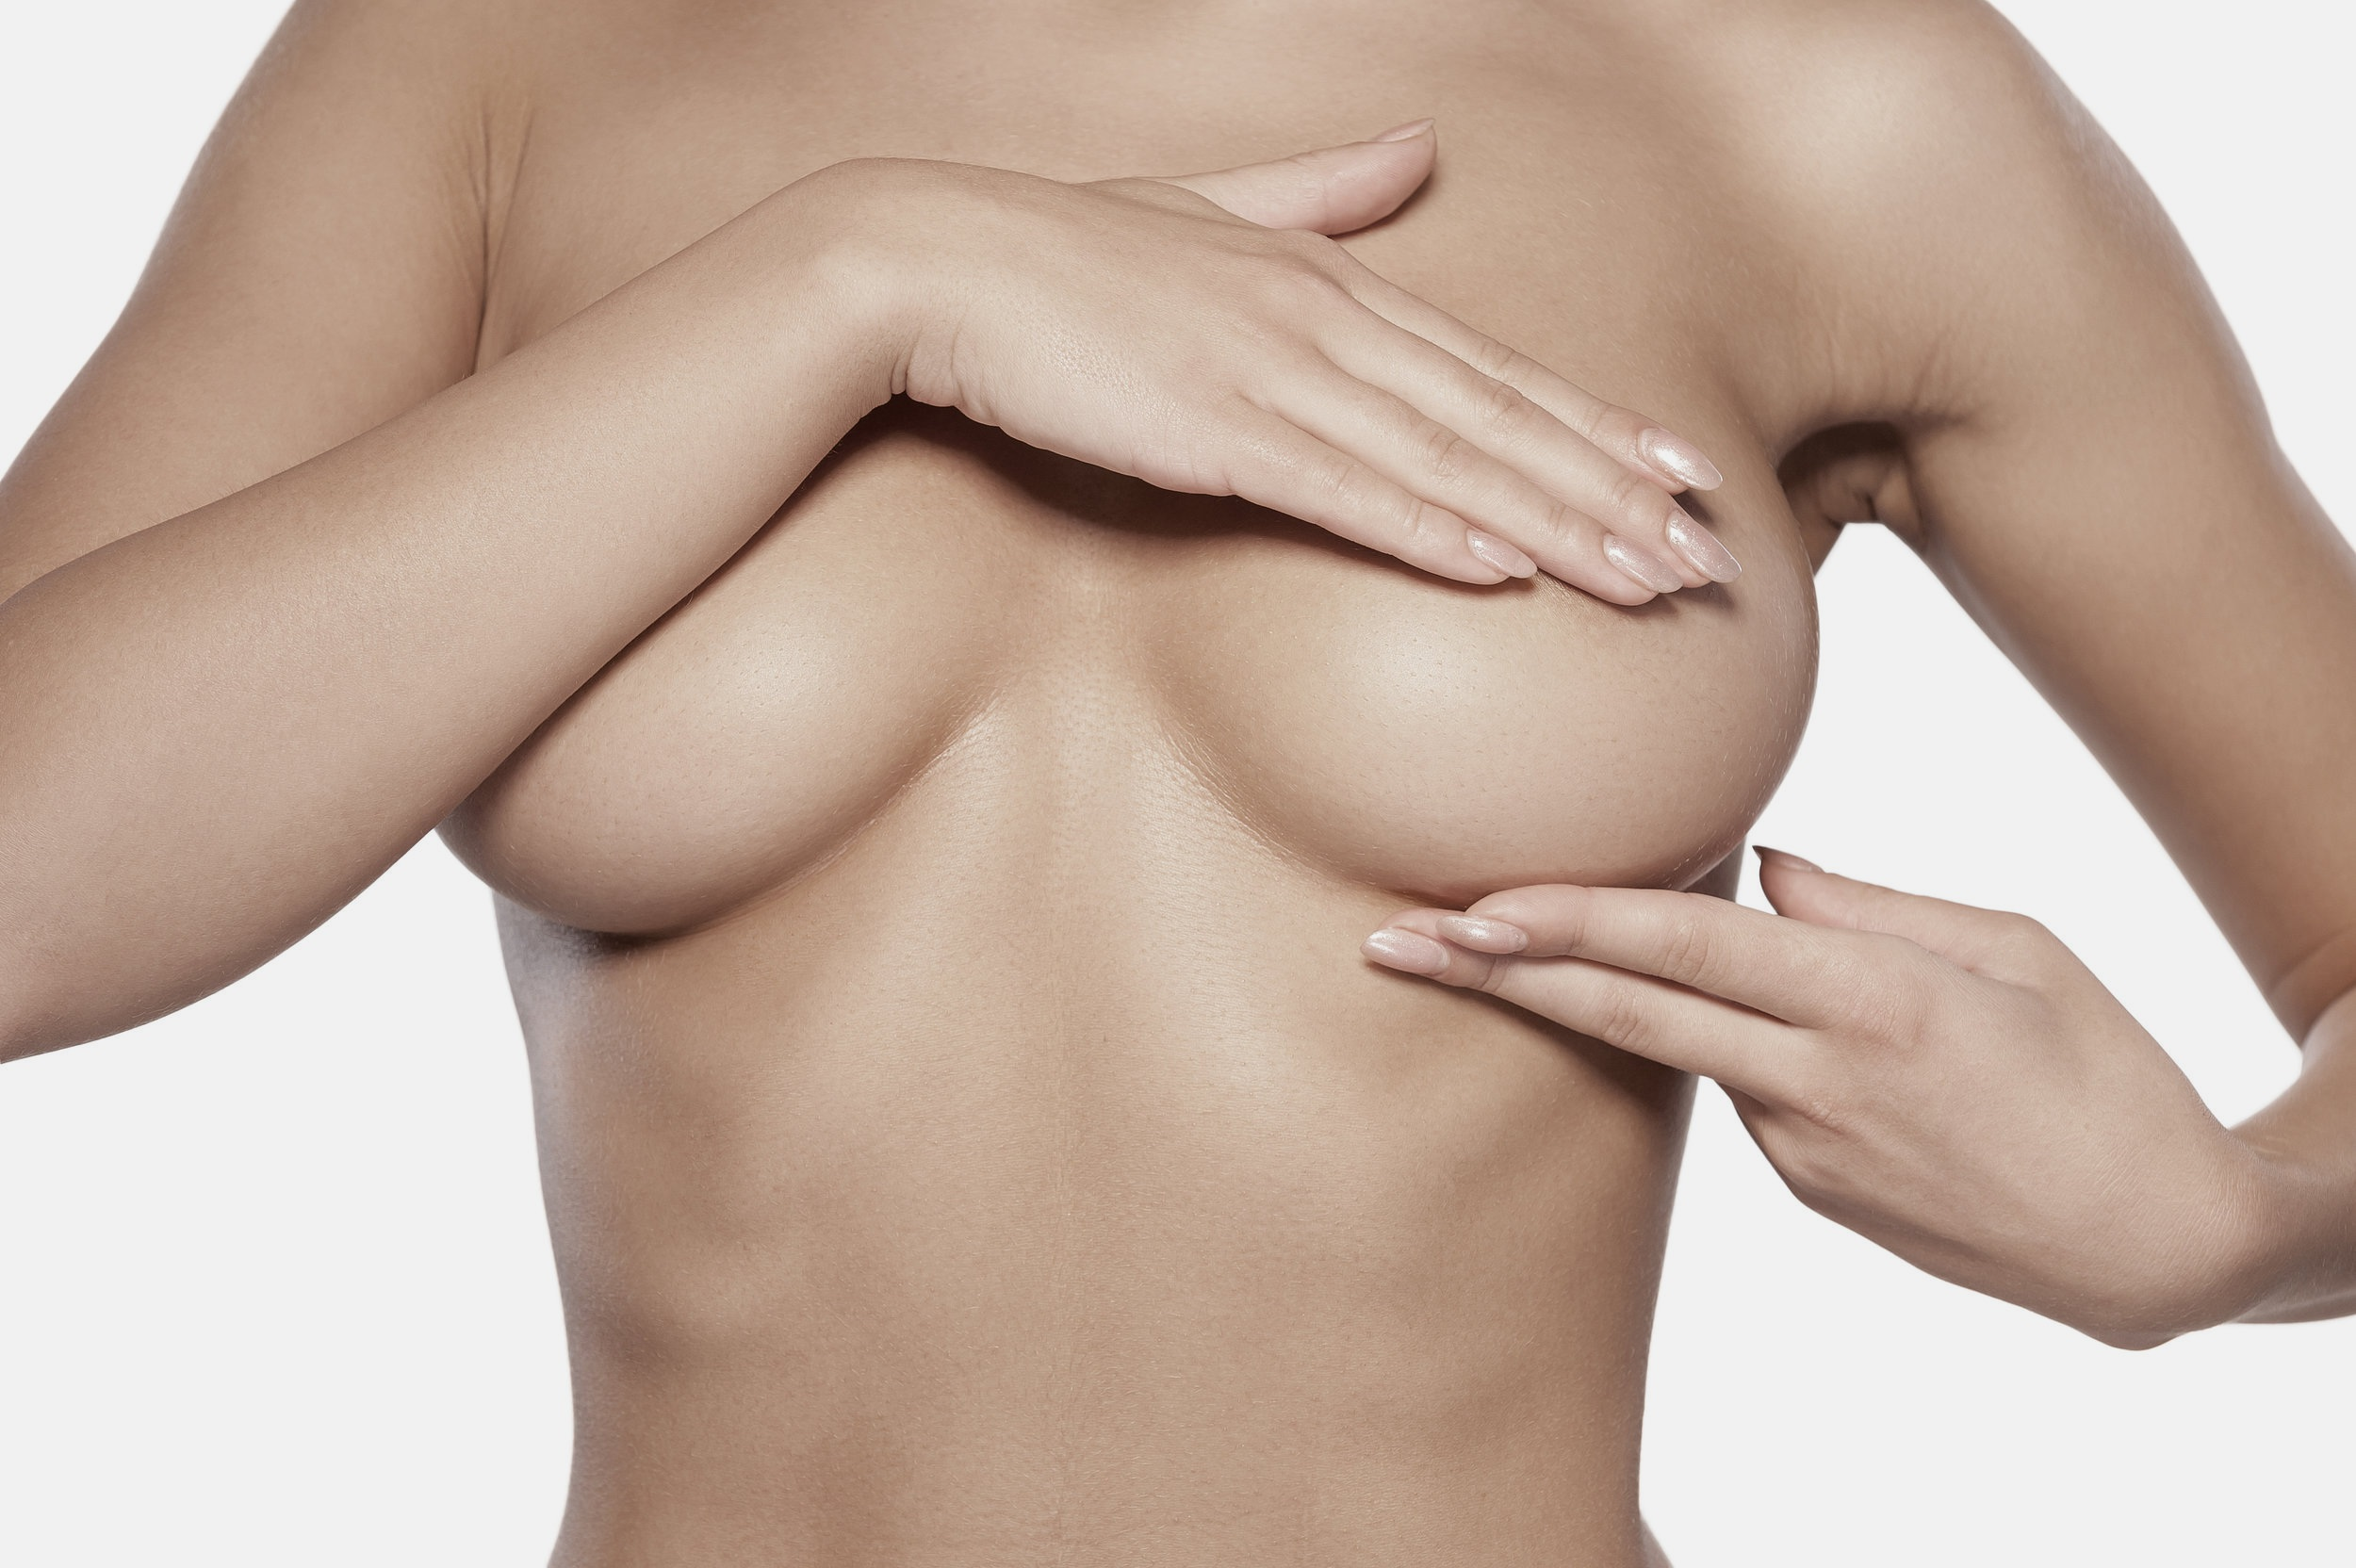 key treatment areas - Capsules (scar tissue) can cause unpleasant constriction of the breasts, which can feel uncomfortable and may look undesirable. A capsulectomy will remove the capsules that cause this and make the breasts feel and look better.